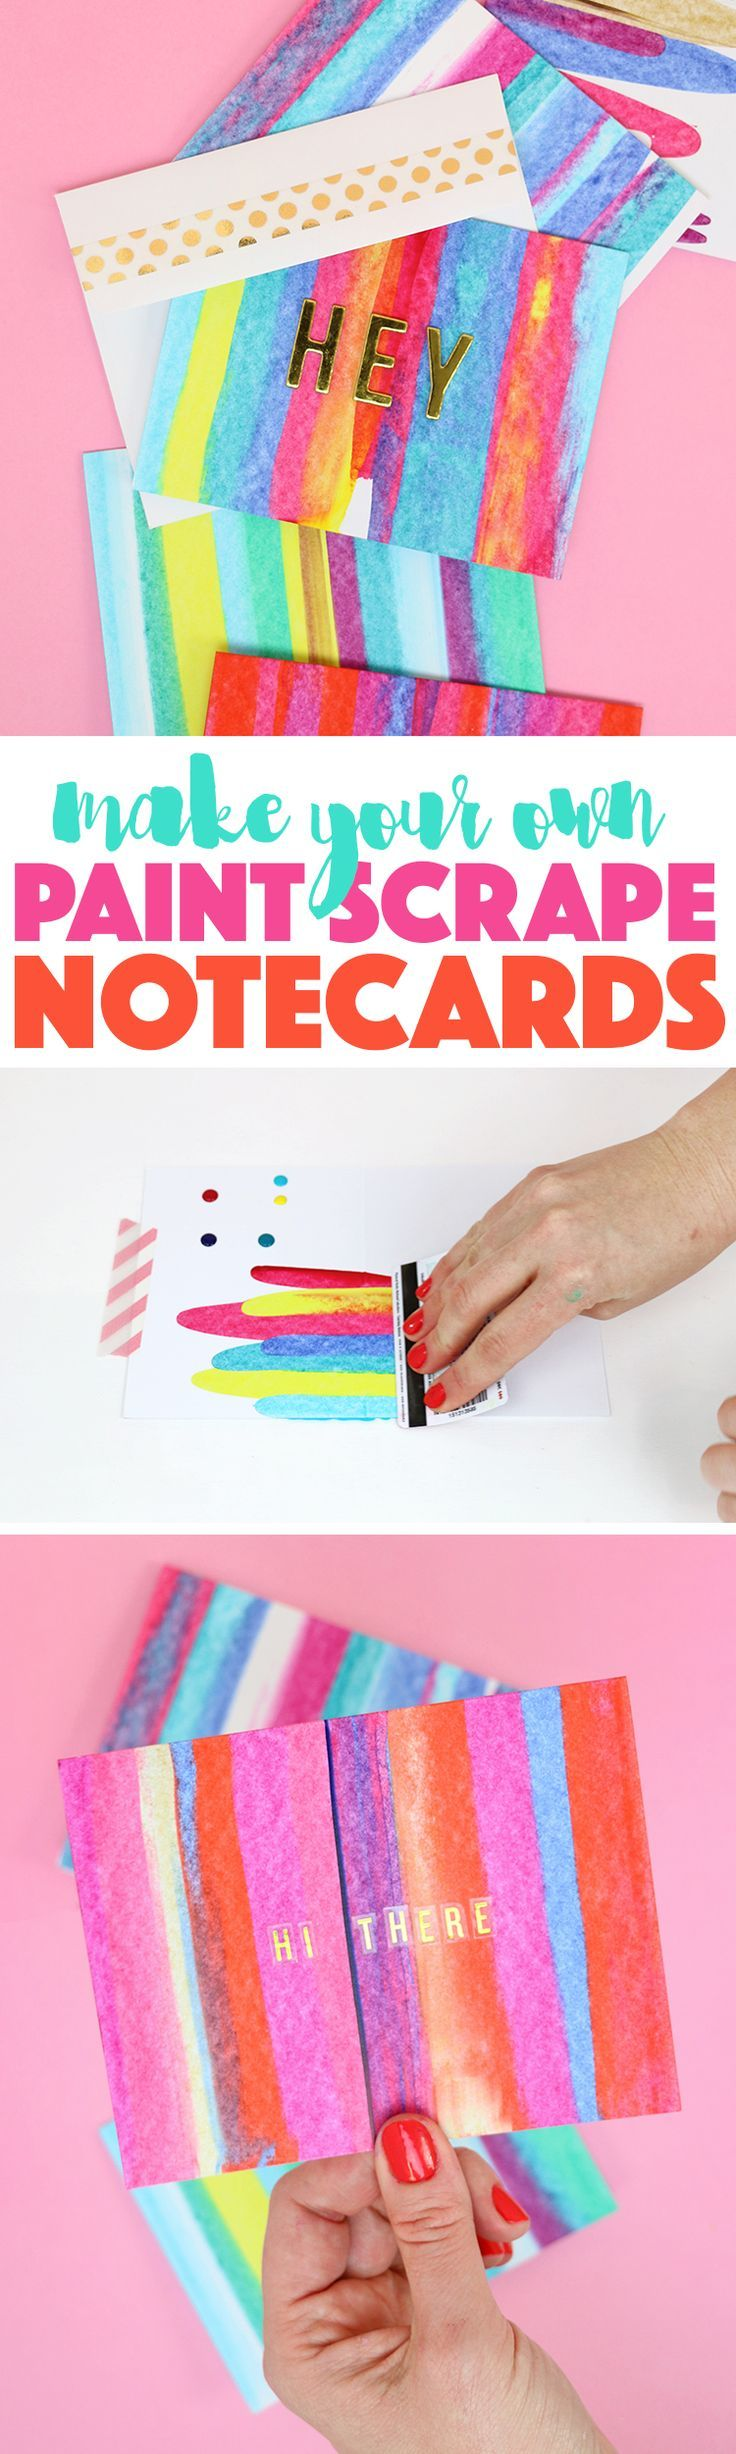 33 creative scrapbook ideas every crafter should know diy projects - Diy Art Project Idea So Easy And Lots Of Fun Learn How To Make